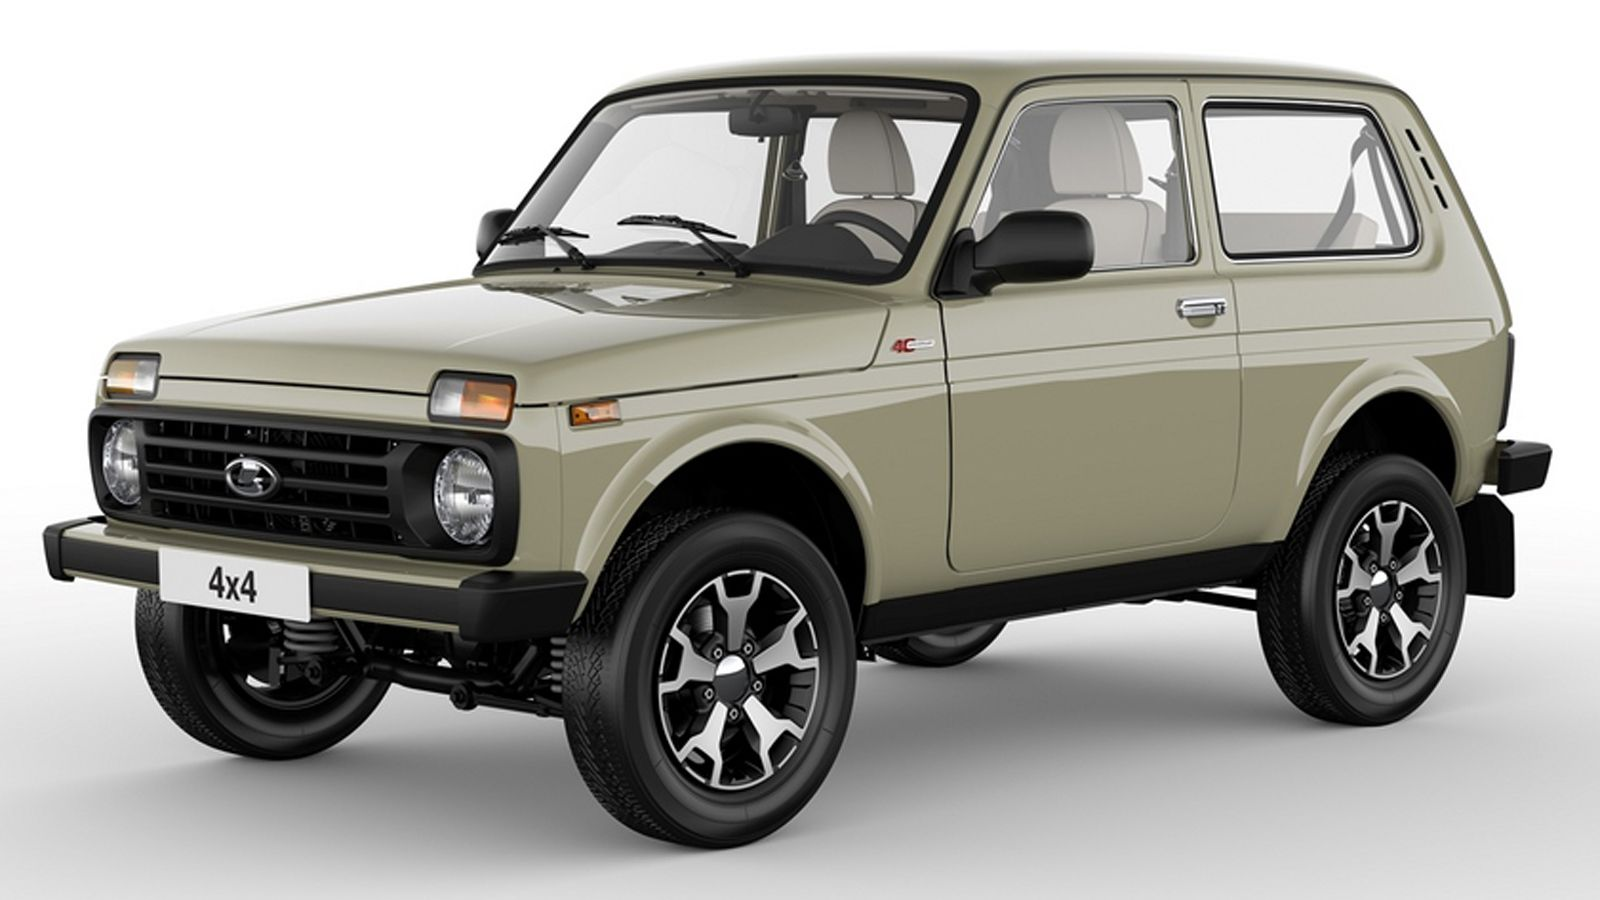 lada niva lada niva 4x4. Black Bedroom Furniture Sets. Home Design Ideas